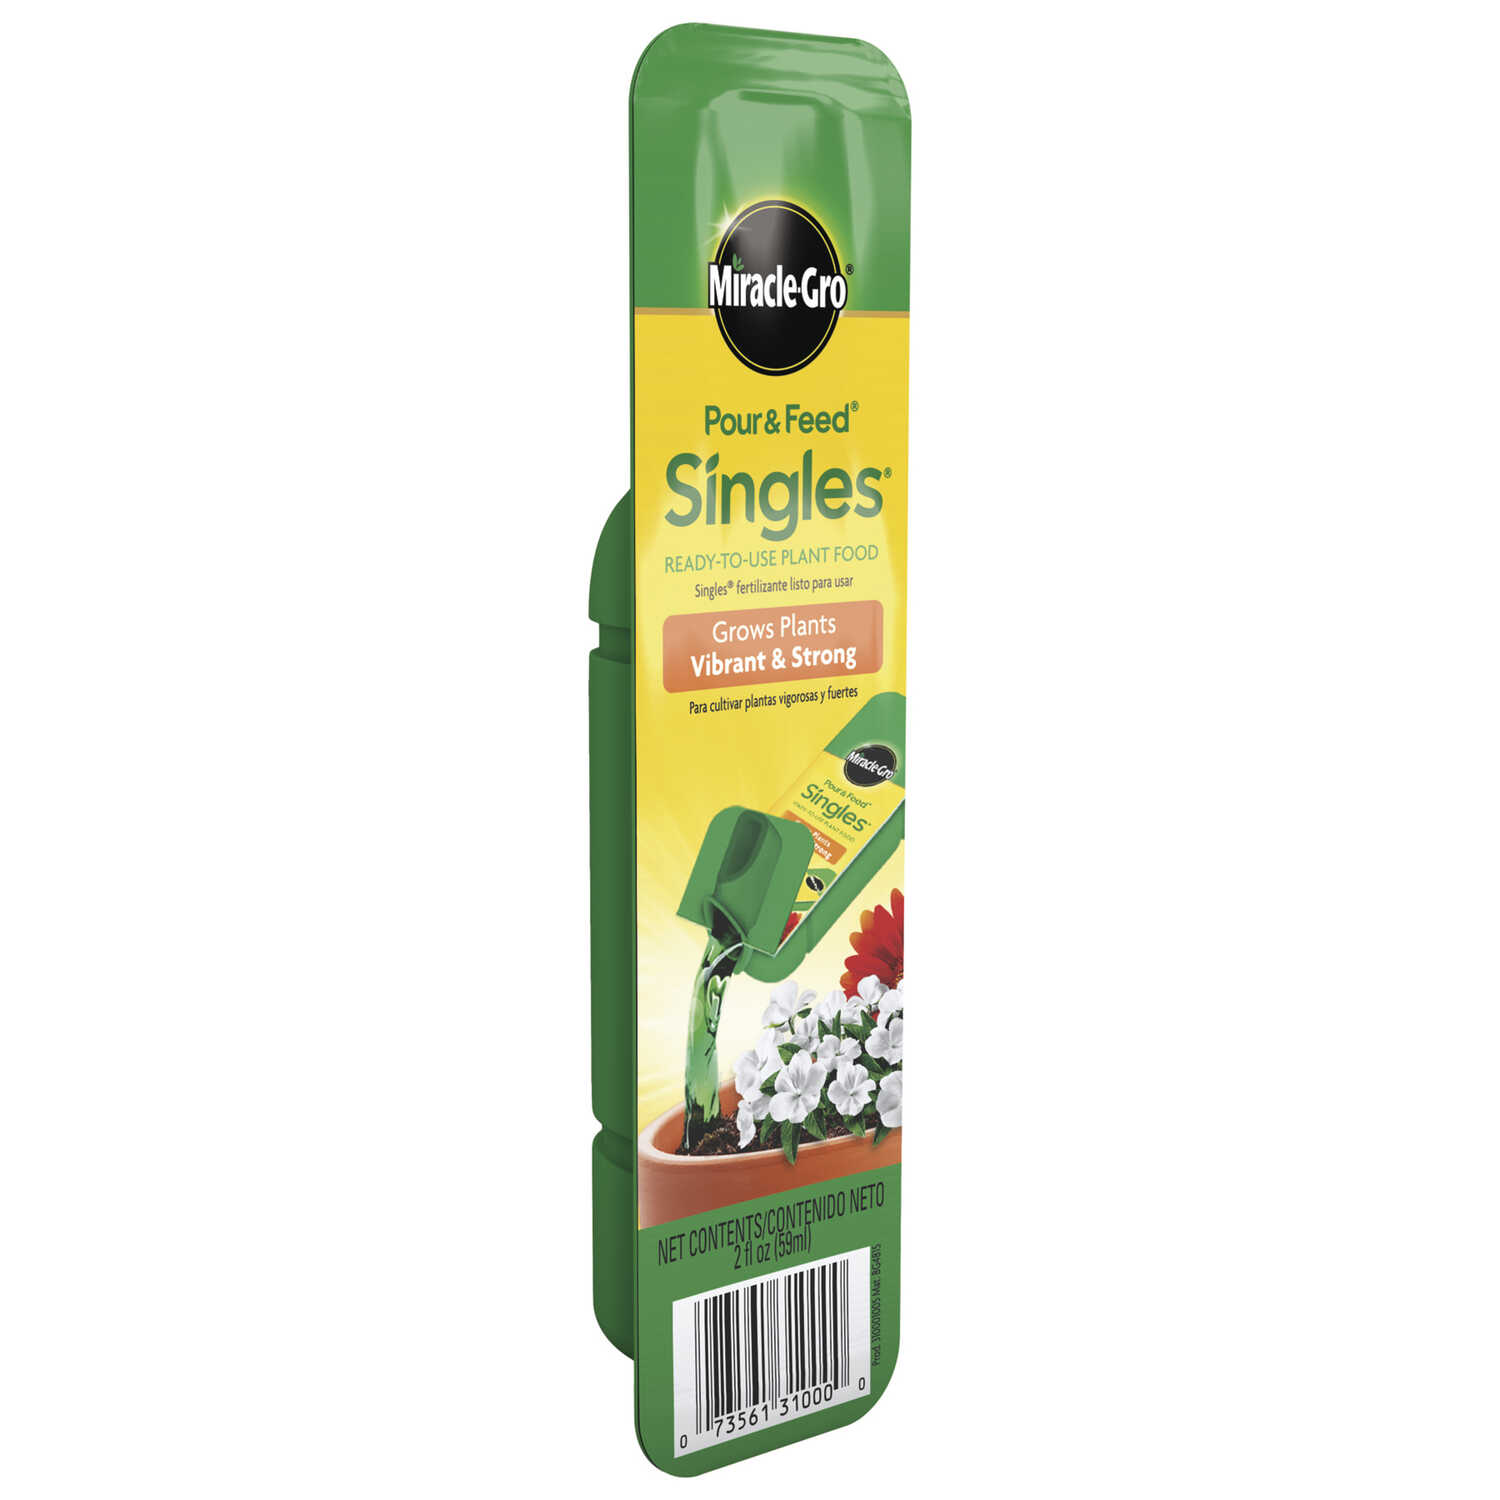 Miracle-Gro  Pour & Feed Singles  Liquid  Plant Food  2 oz.